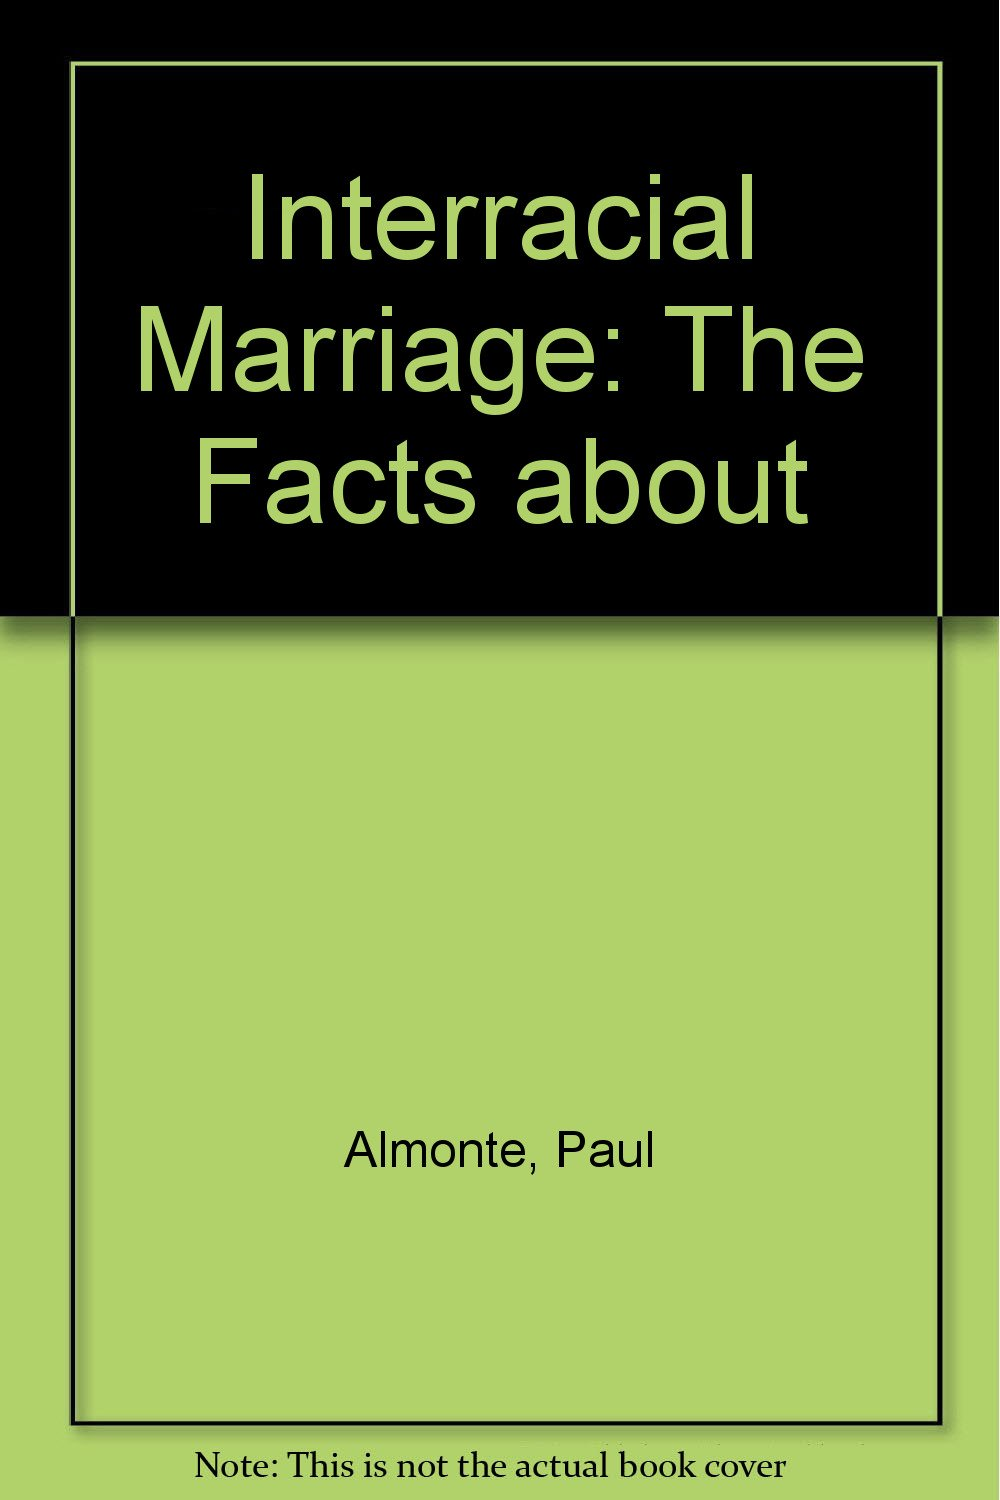 Facts on interracial marriages think, that